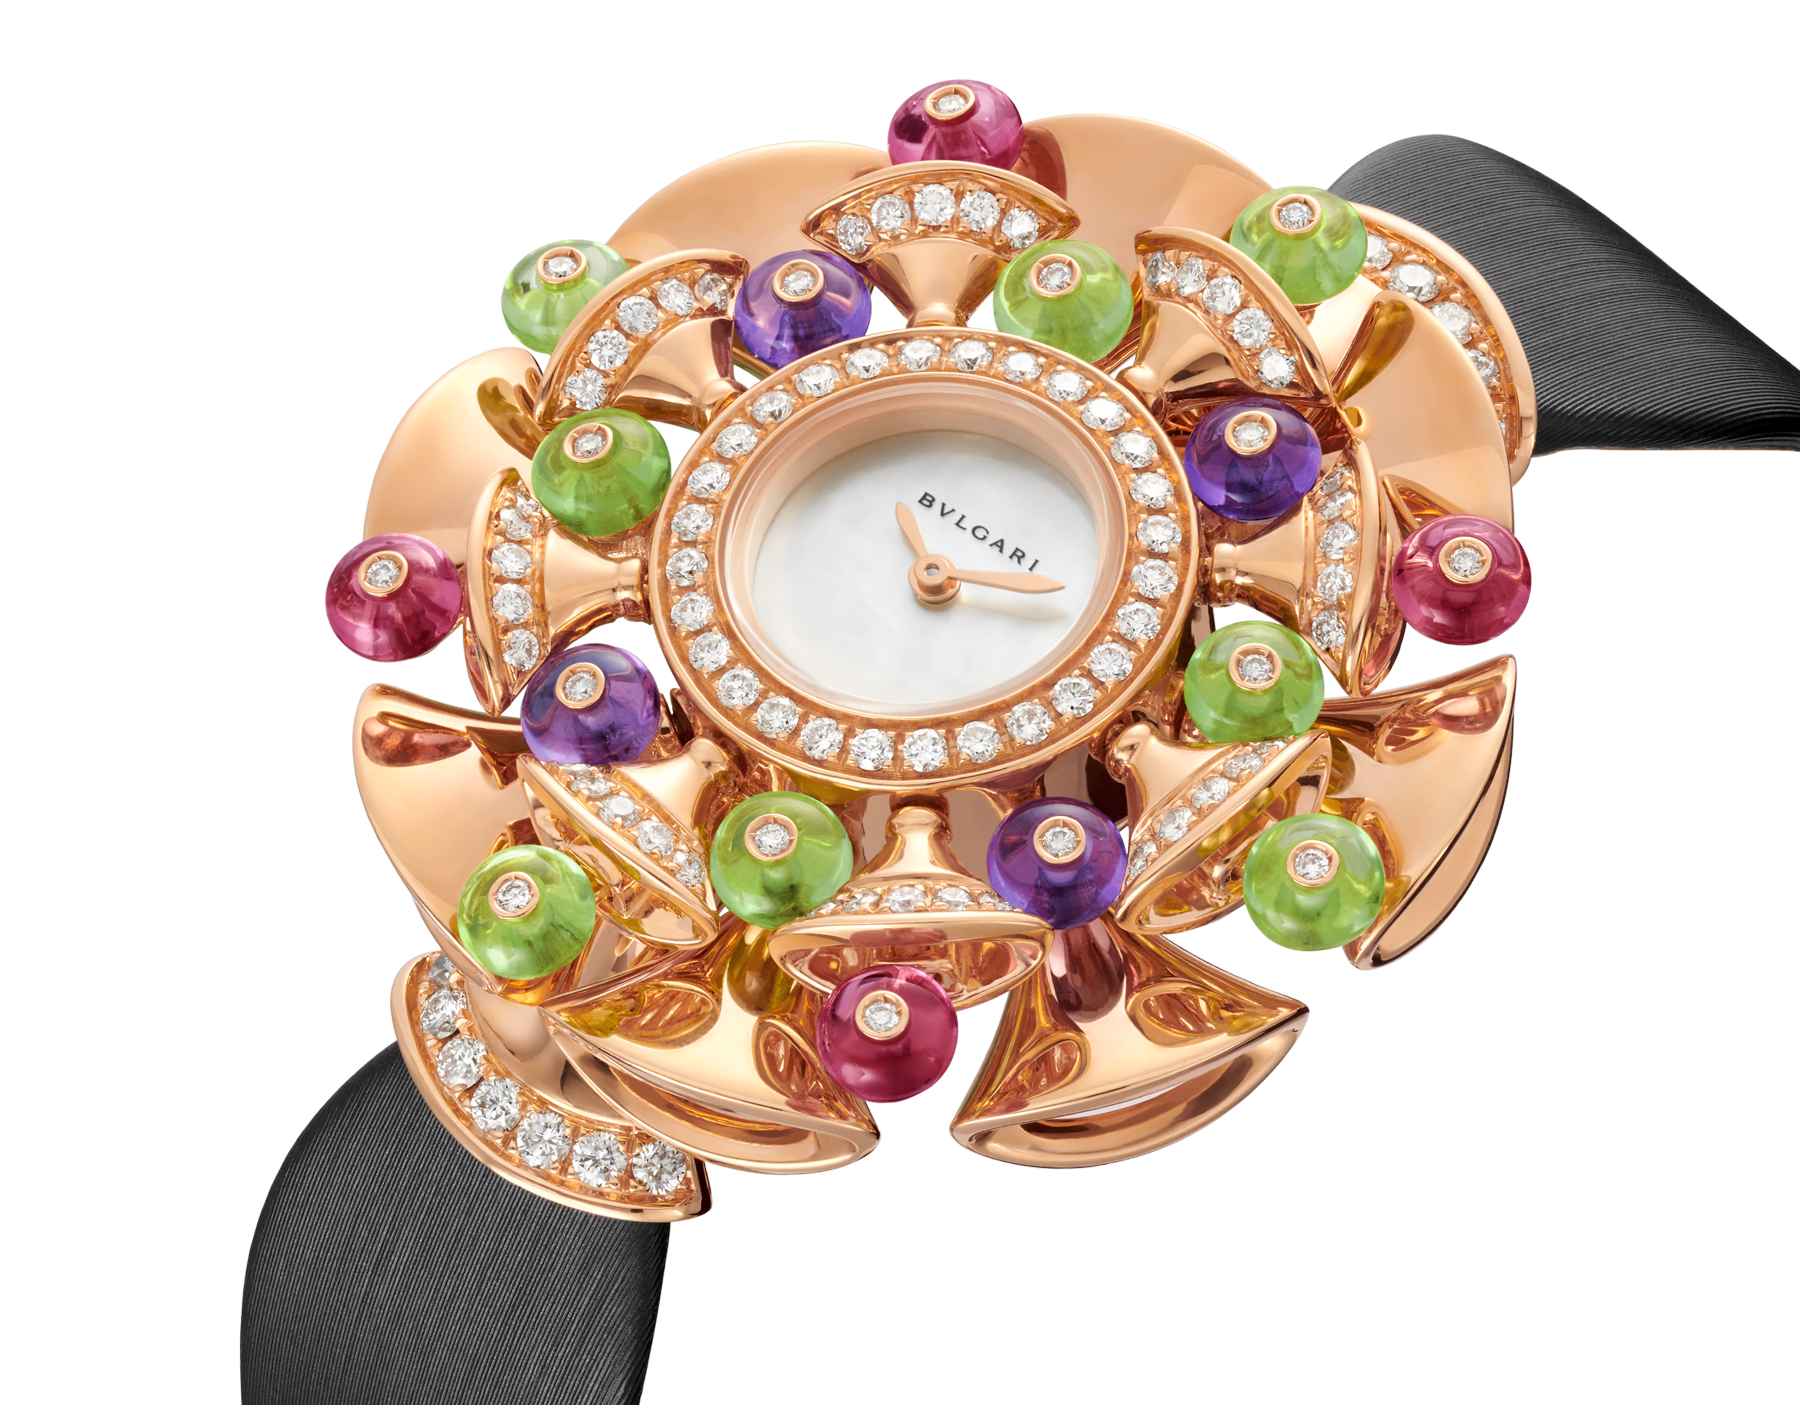 DIVAS' DREAM watch with 18 kt rose gold case set with brilliant-cut diamonds, peridot, rubellite and amethyst beads, white mother-of-pearl dial and black satin bracelet 102217 image 2